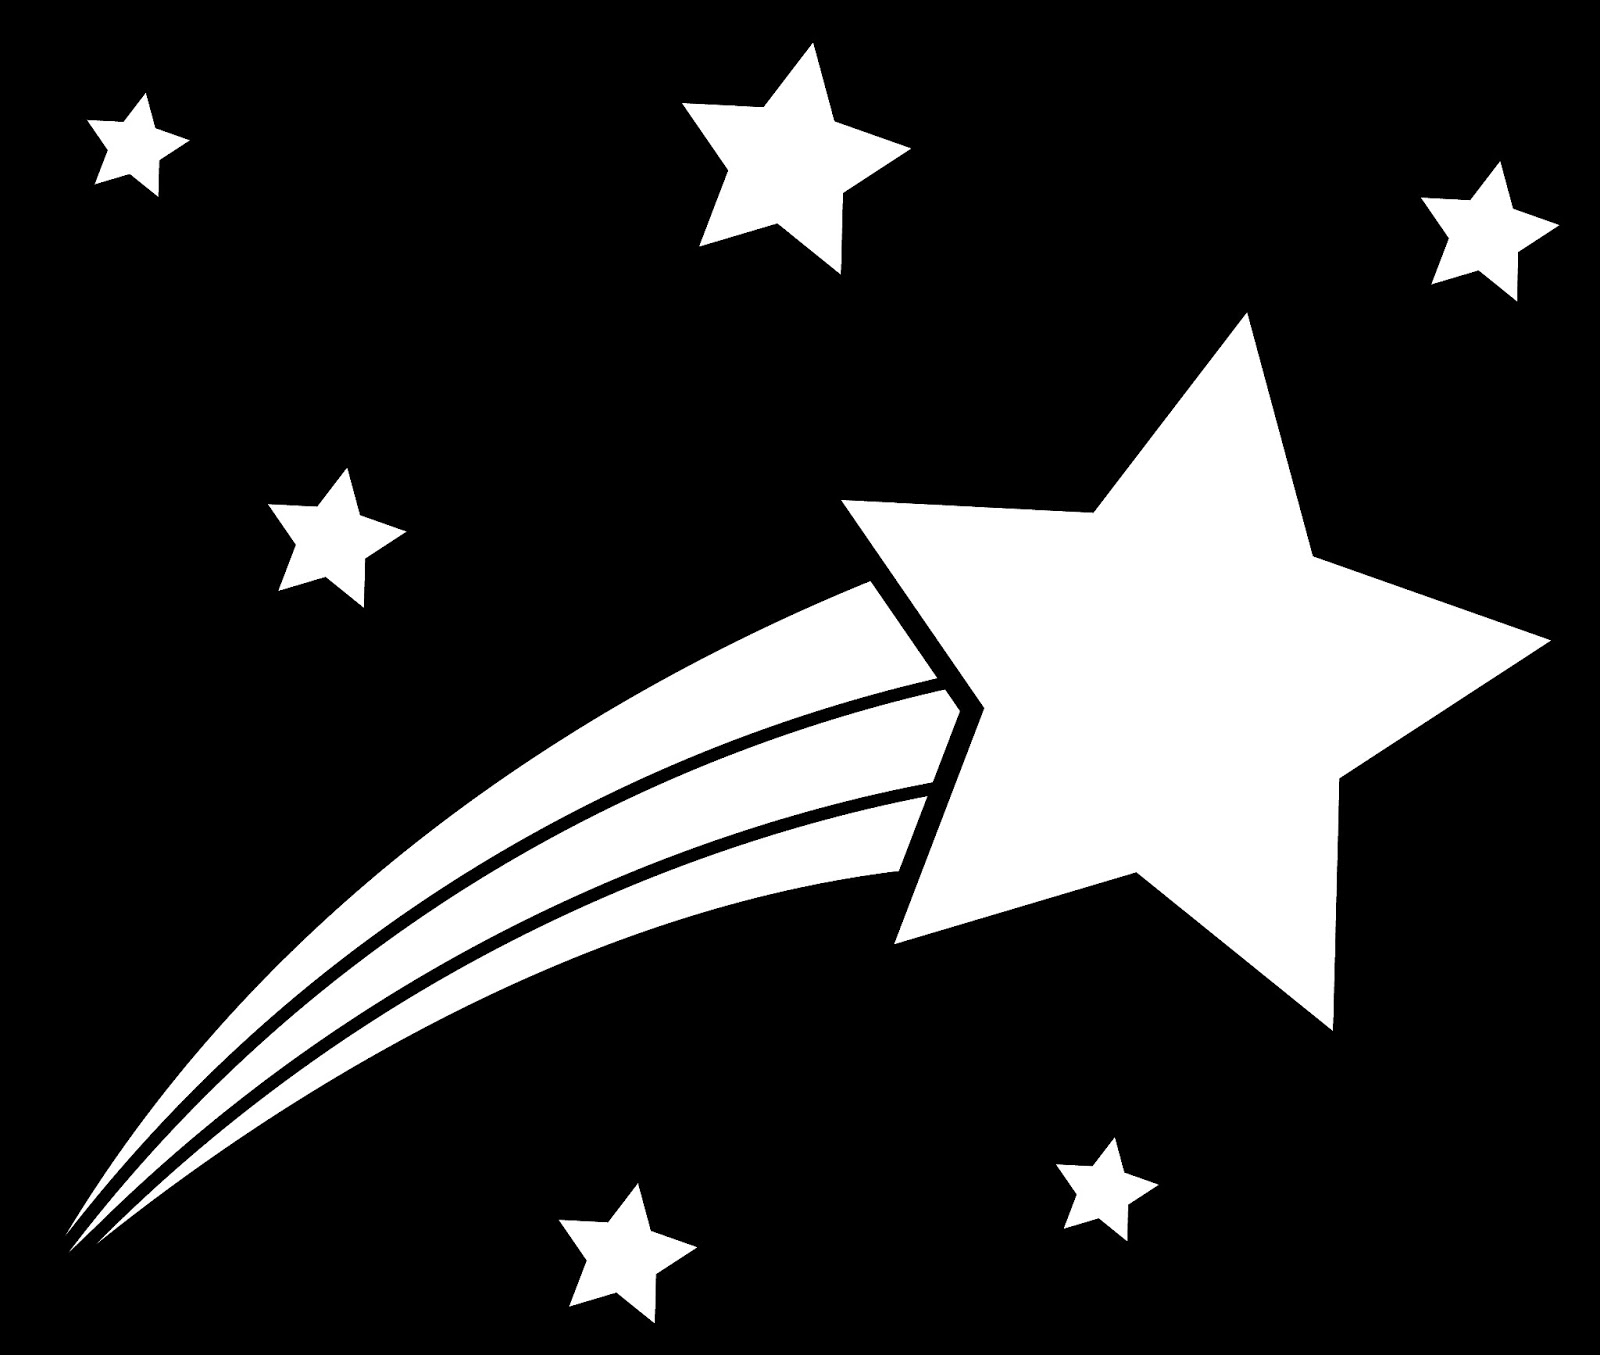 Shooting Star Clip Art Black And White C-Shooting Star Clip Art Black And White Clipart Panda Free Clipart-15